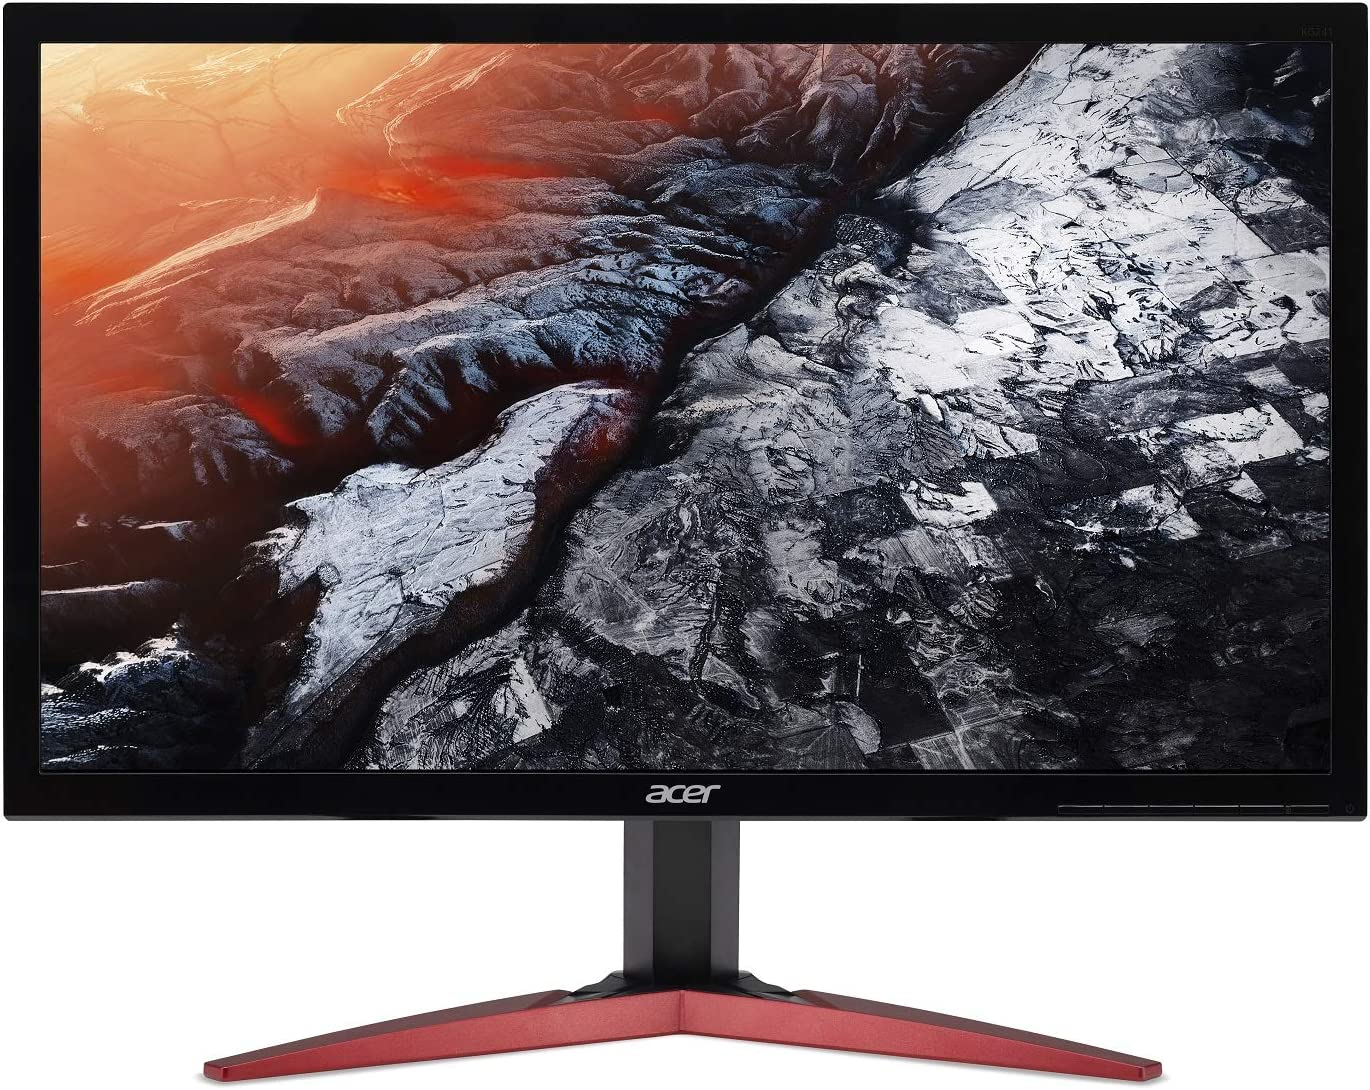 Acer kg241q gaming monitor under 150 dollars